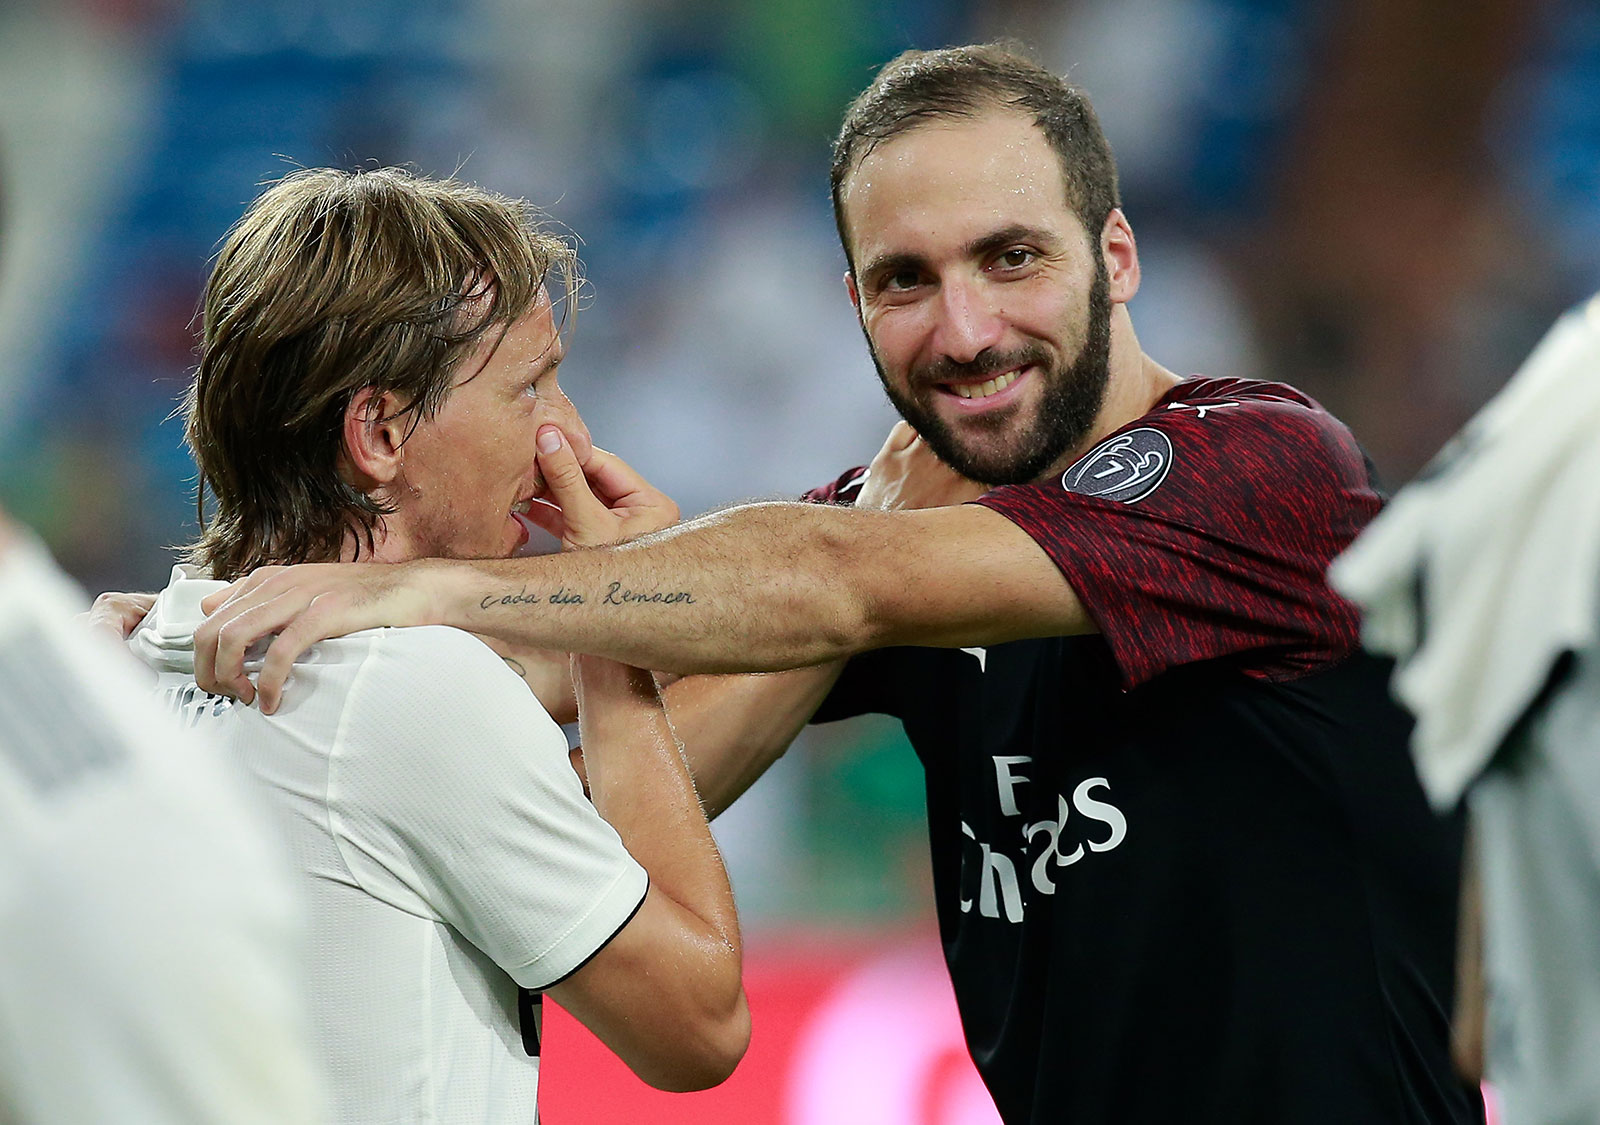 Gonzalo Higuain and Luka Modrić at the end of Real Madrid-Milan at Estadio Santiago Bernabéu on August 11, 2018. (Photo by Gonzalo Arroyo Moreno/Getty Images)